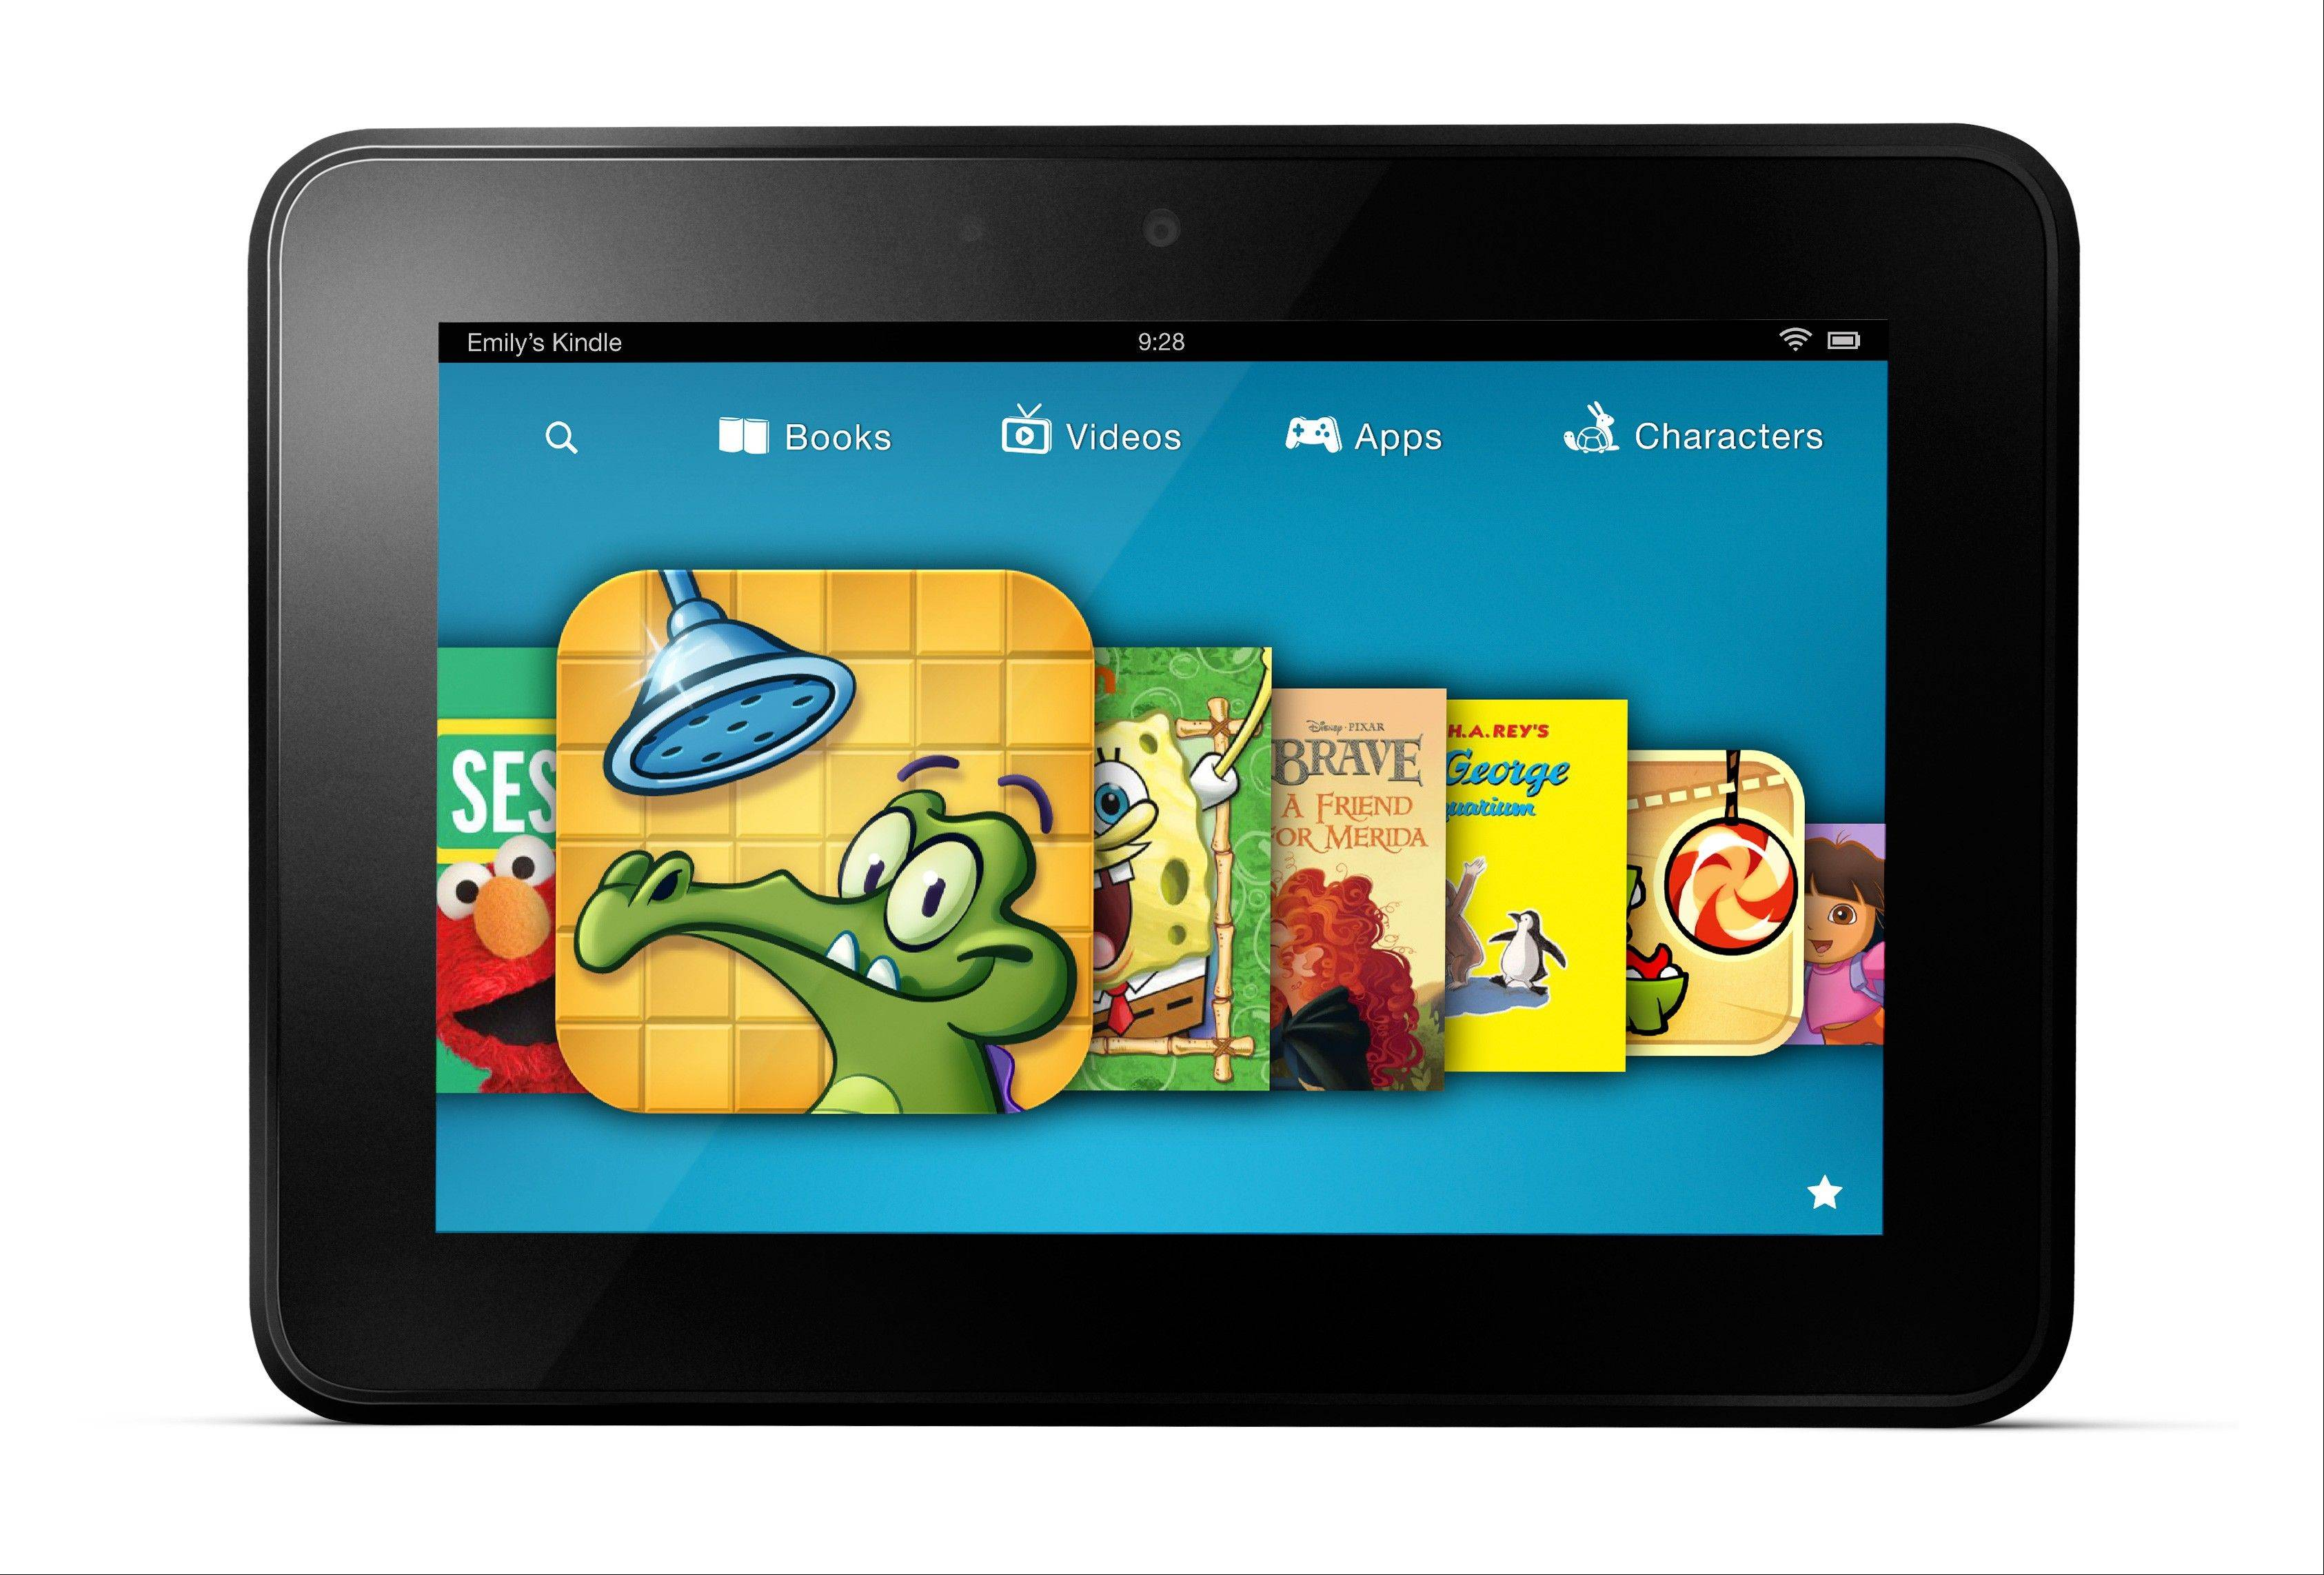 This image provided by Amazon shows a new subscription service for children�s games, videos and books aimed at getting more kids to use its Kindle Fire tablet devices. Amazon.com Inc. announced that the Kindle FreeTime Unlimited service will be available in the next few weeks as part of an automatic software update.